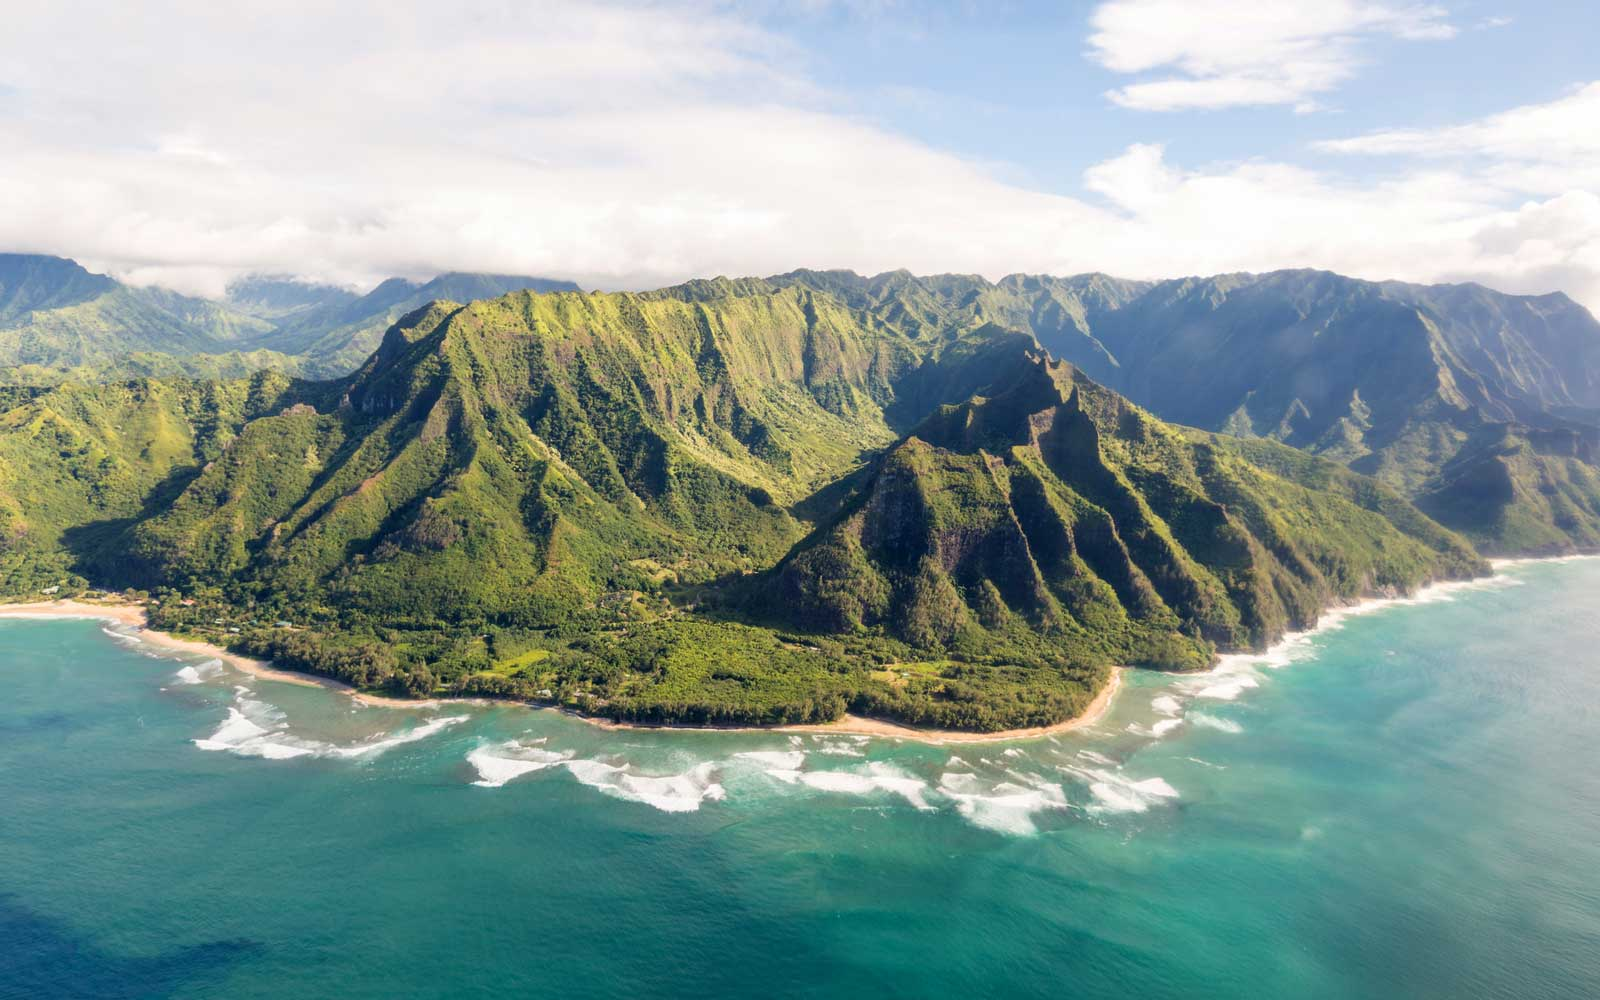 Napali coast of Kauai (Hawaii) seen from above